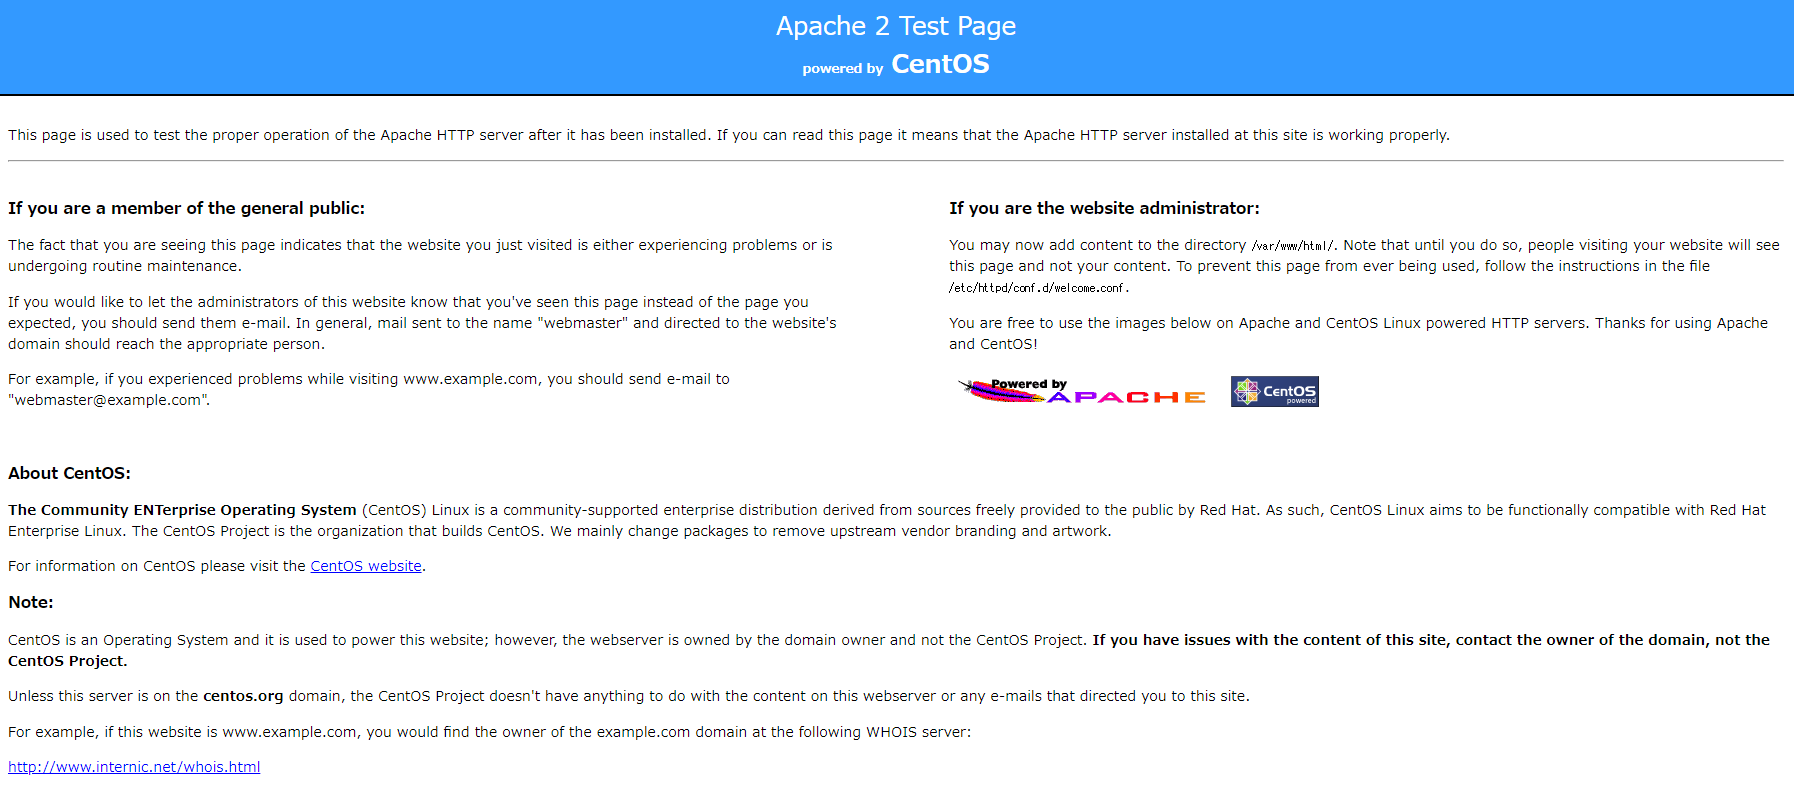 FireShot Capture 75 - Apache HTTP Server Test Page powered by CentOS - http___localhost_8080_.png